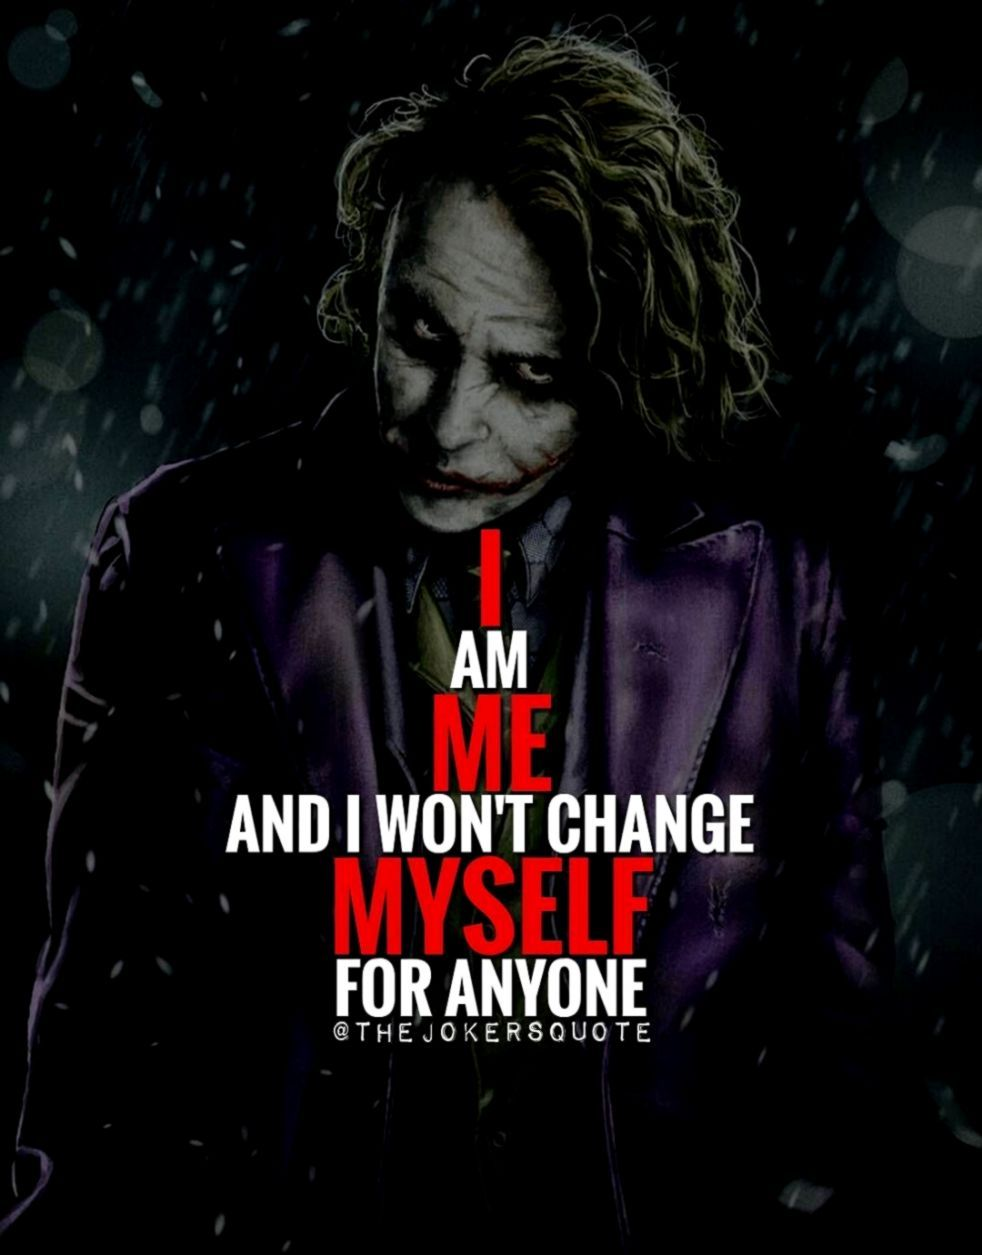 Joker Quotes Hd Wallpapers 4k ~ Quotes and Wallpaper M